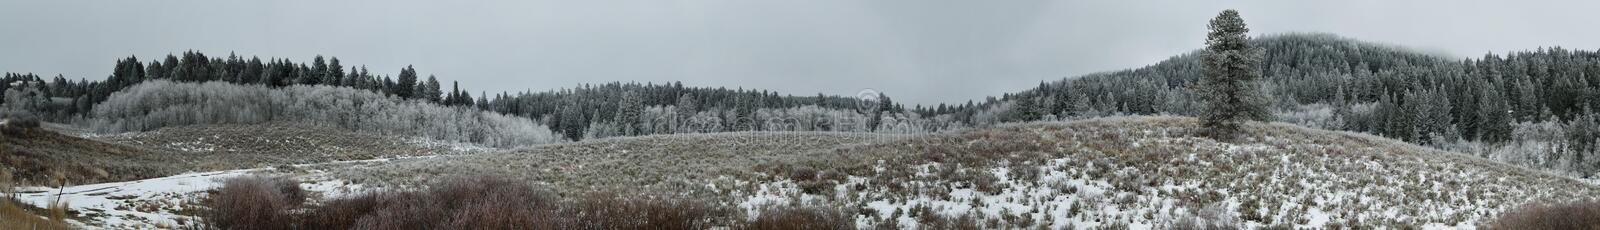 Frozen Hills royalty free stock images